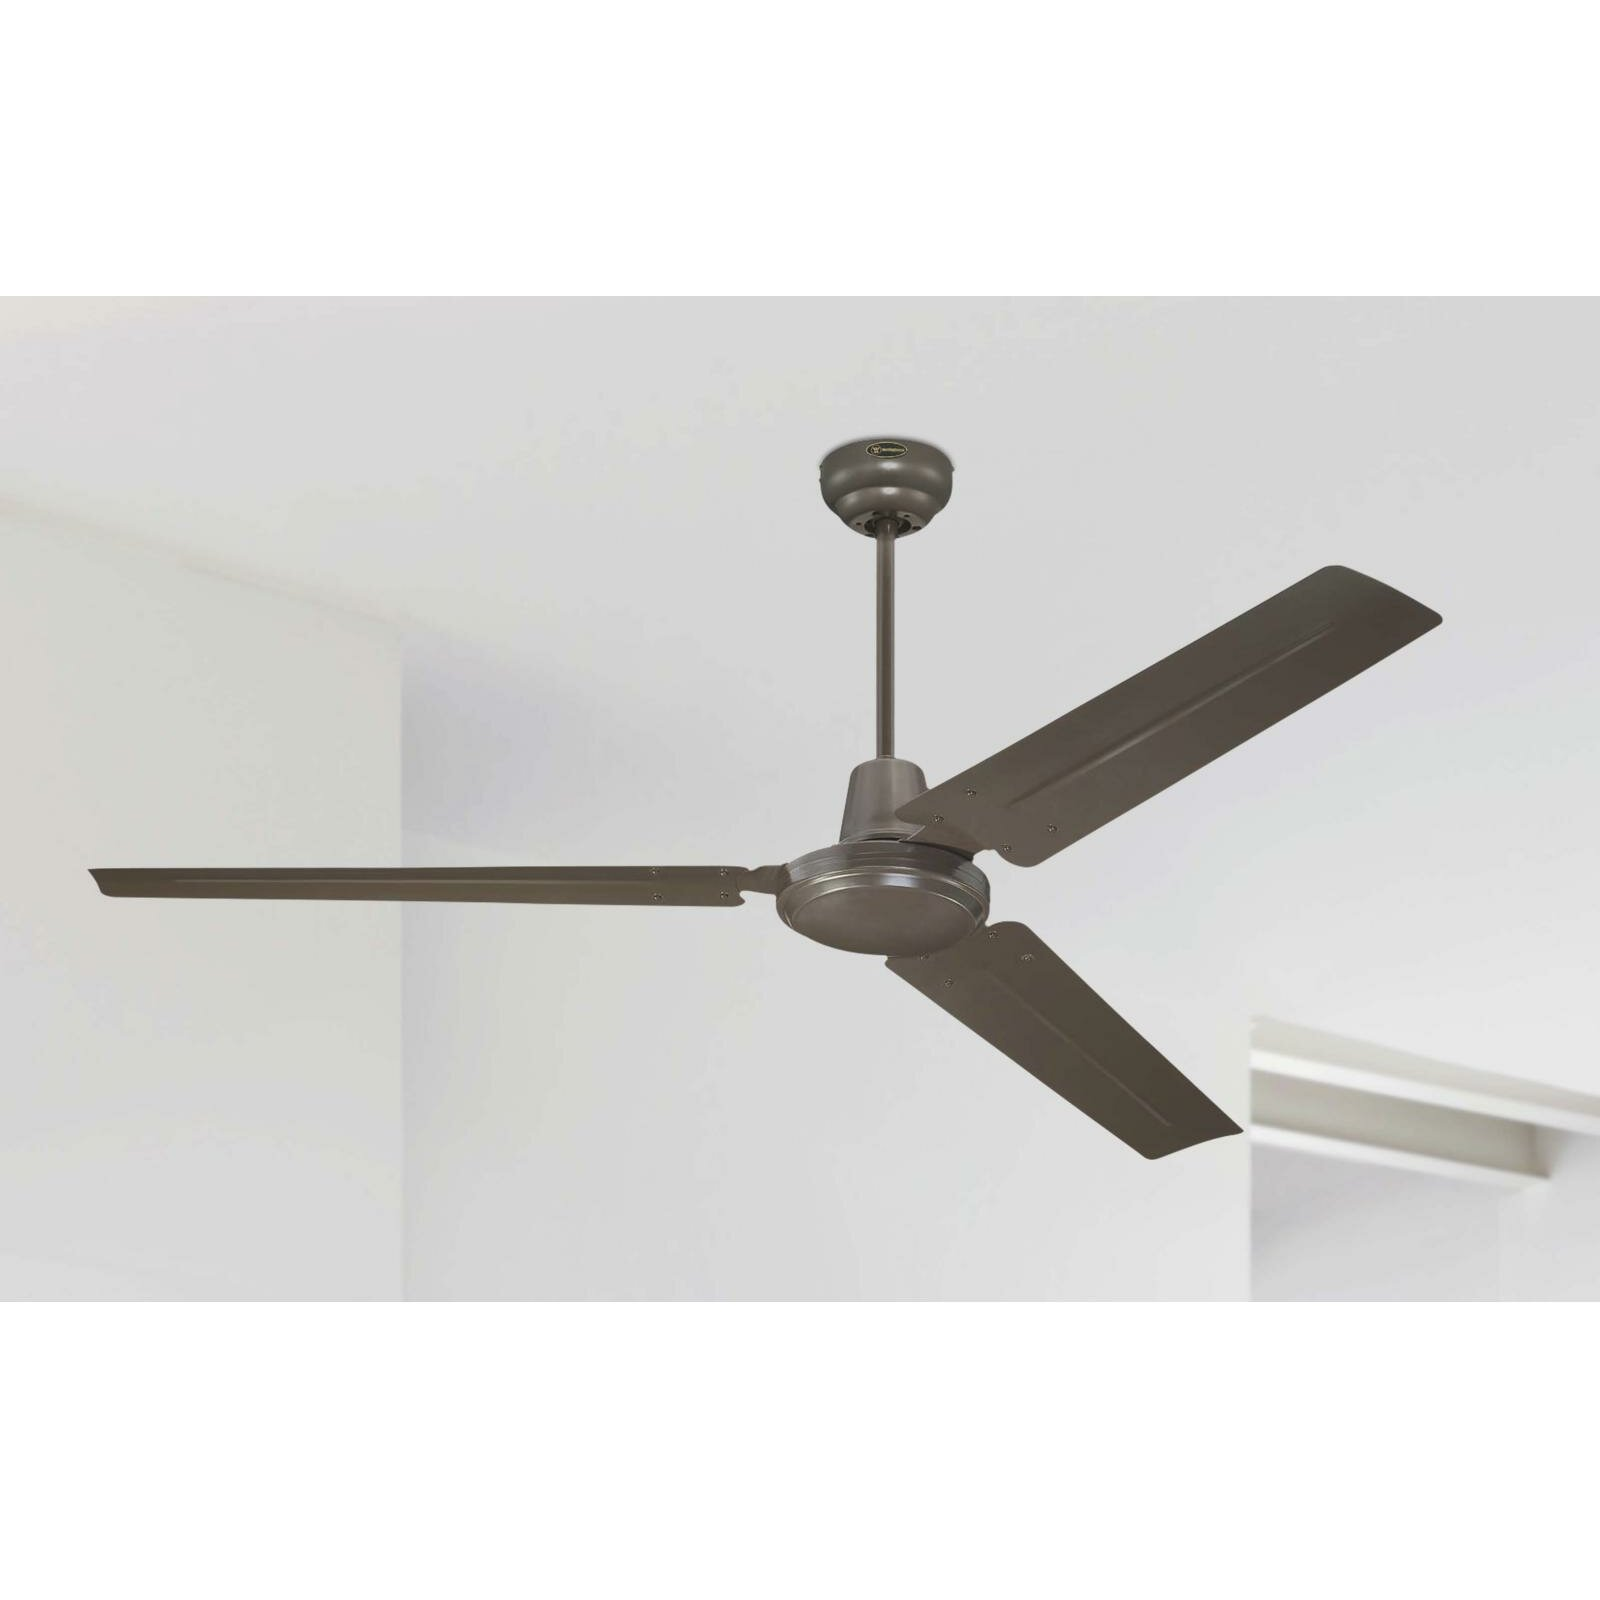 Westinghouse 142cm Industrial 3 Blade Ceiling Fan